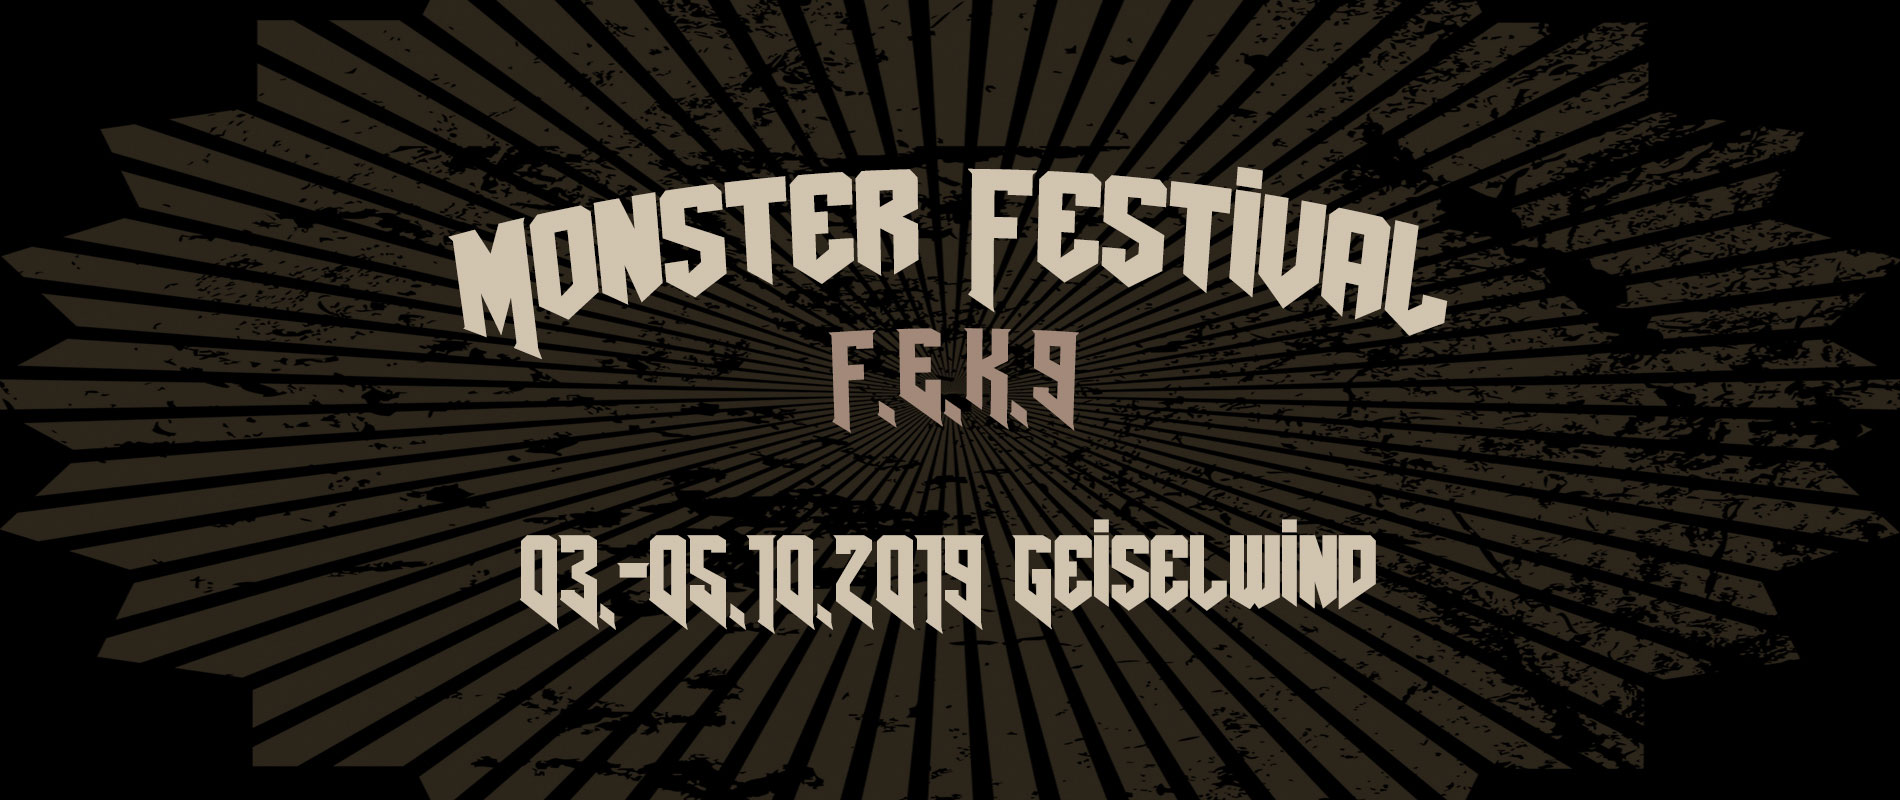 FEK9 Deutschrock Monsterfestival - Eventzentrum Geiselwind